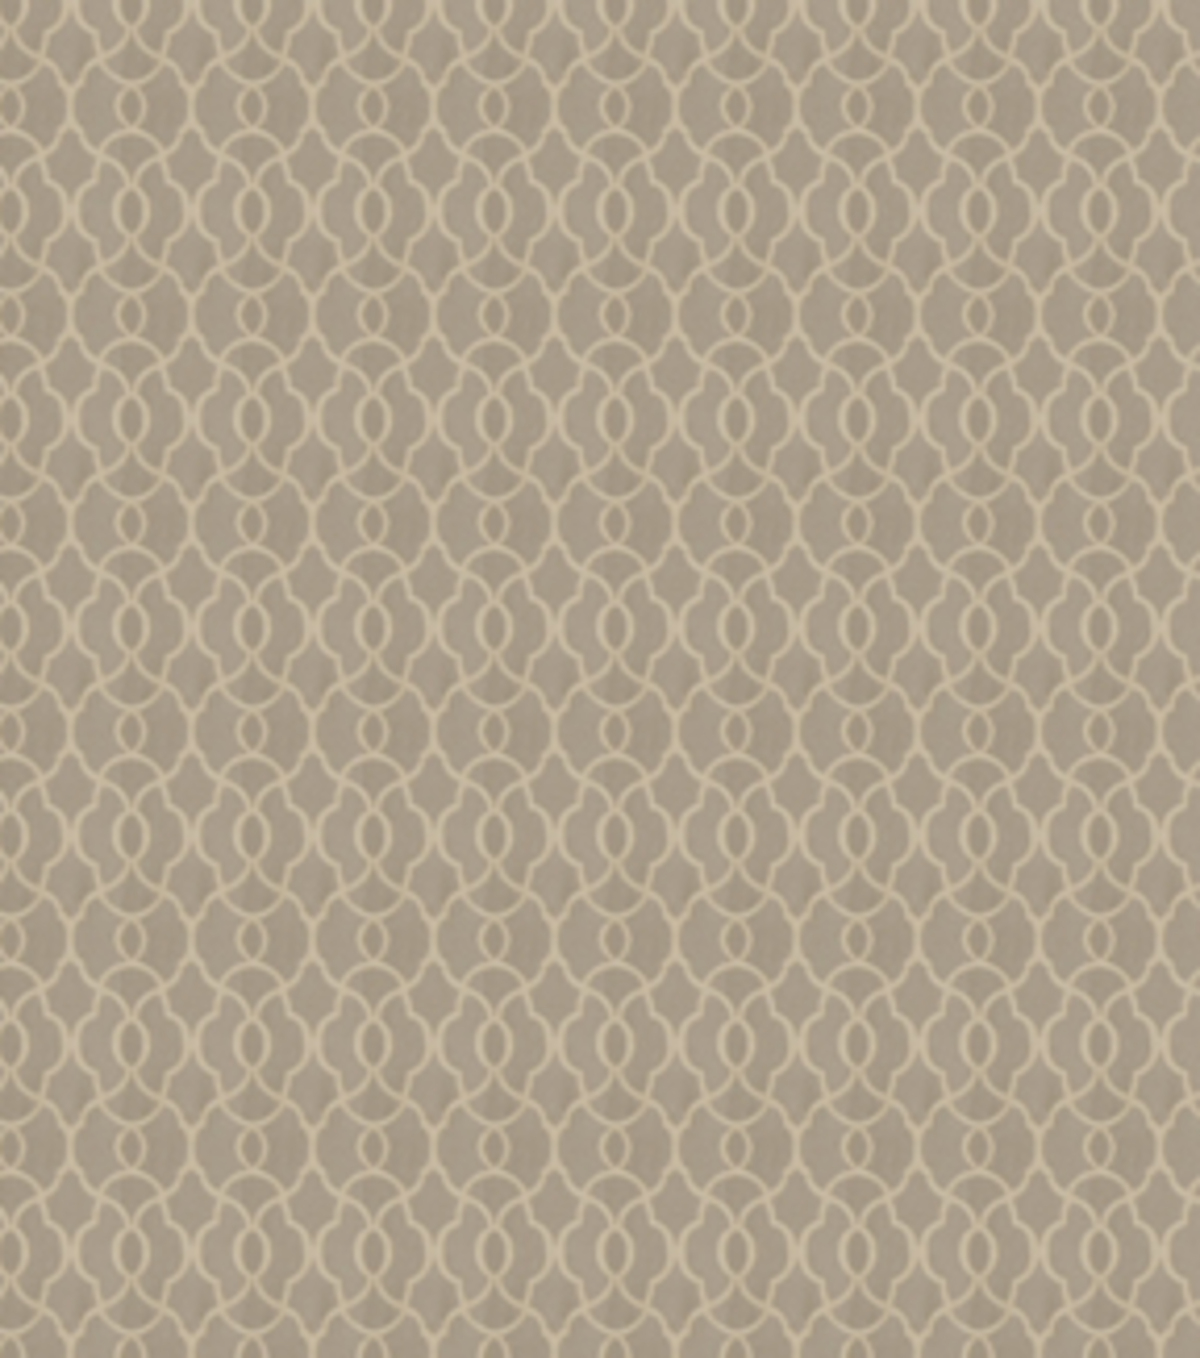 Home Decor 8\u0022x8\u0022 Fabric Swatch-Eaton Square Barometer Taupe